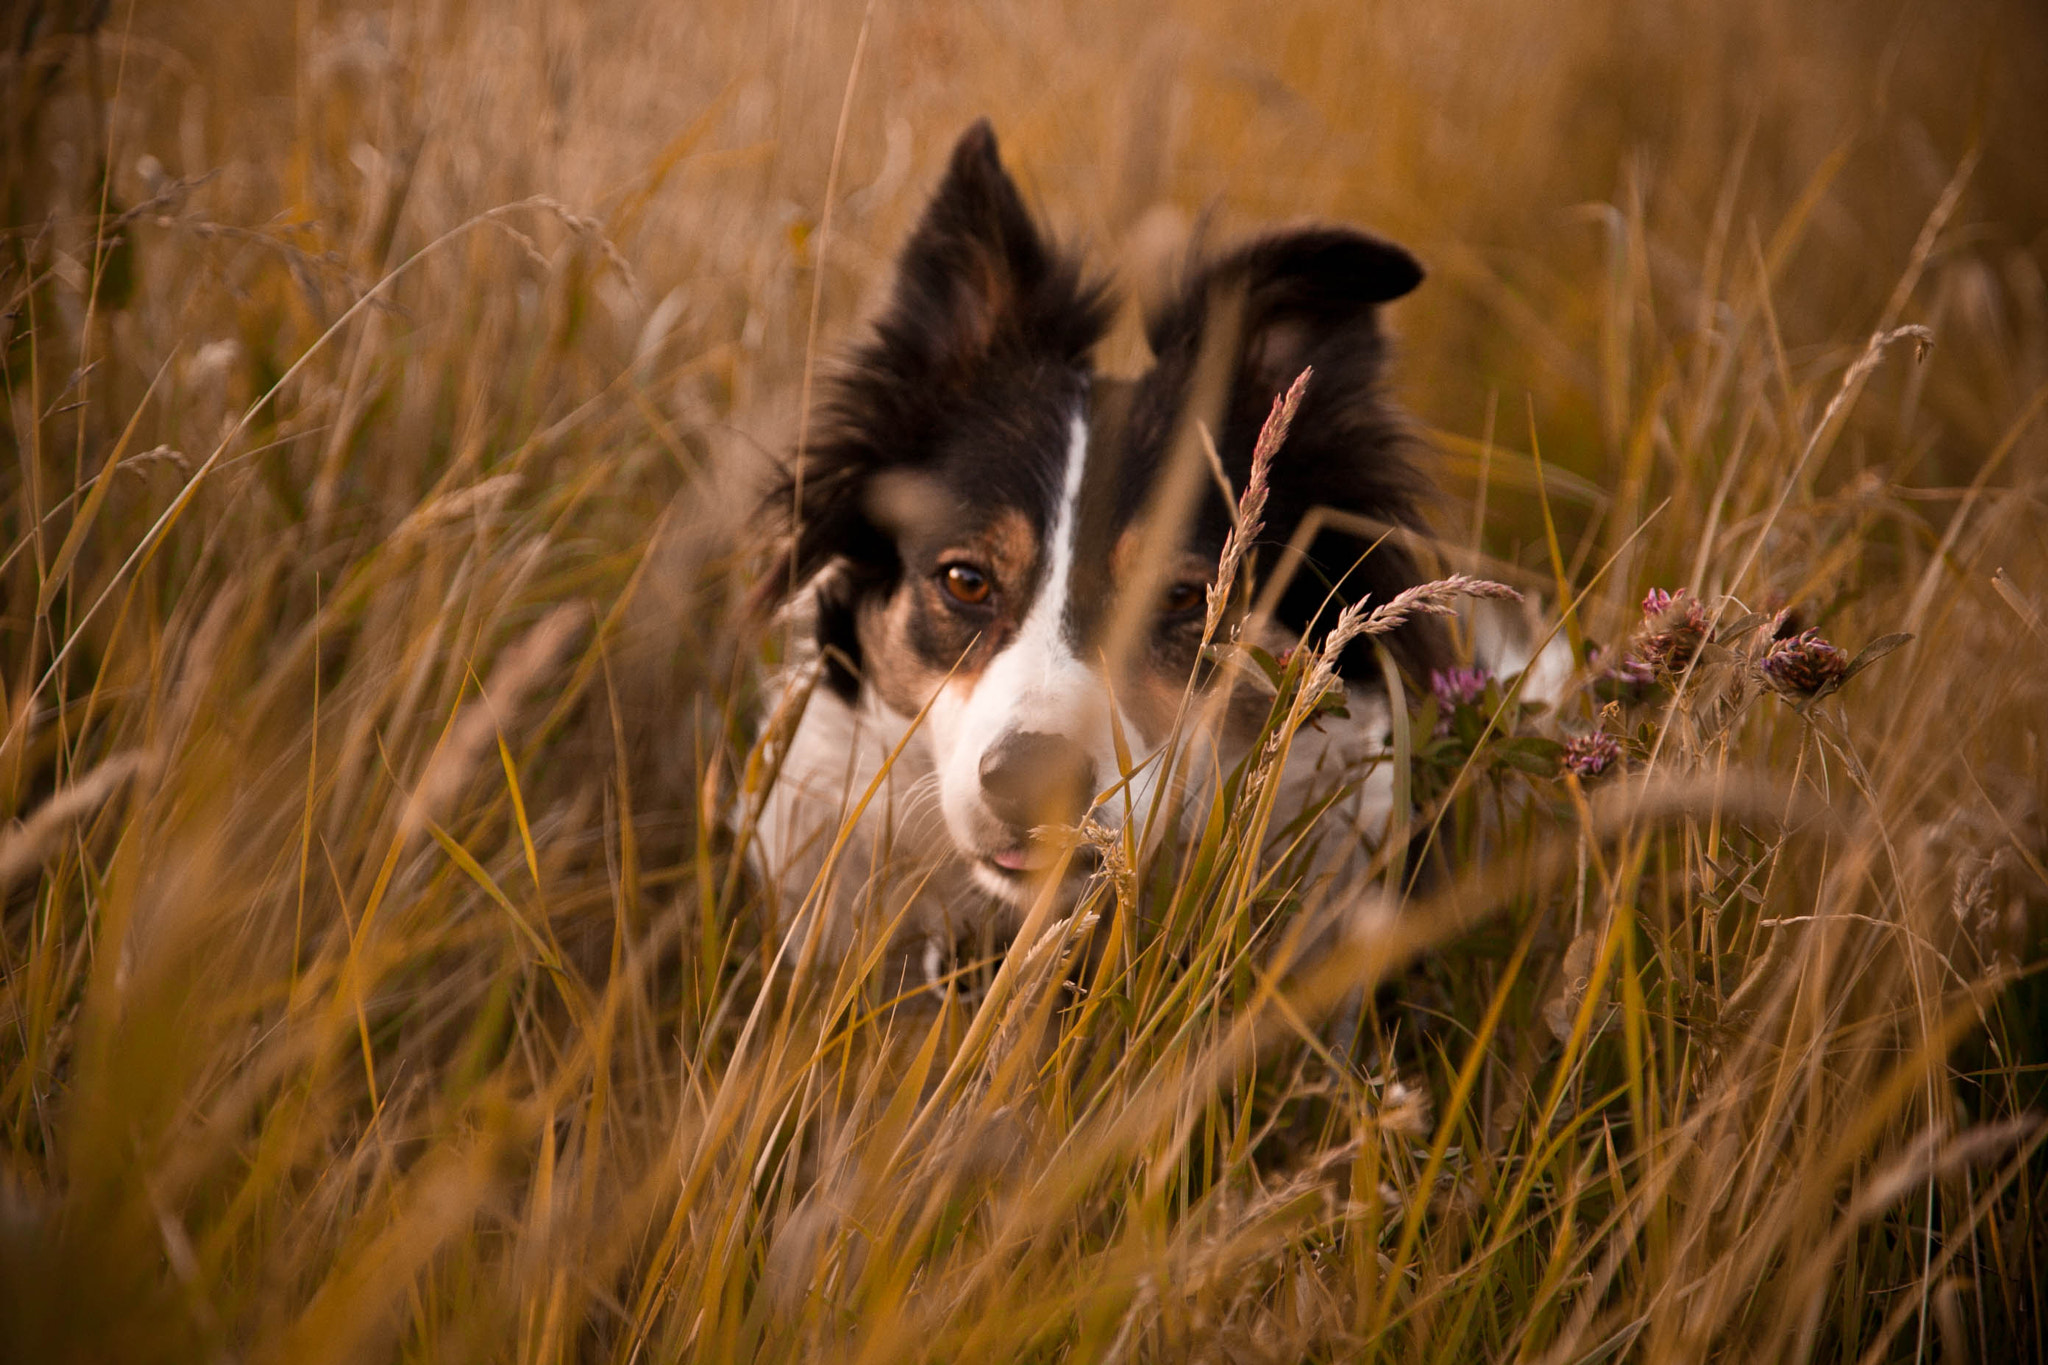 Photograph Hide and Seek by Anna Goodrum on 500px